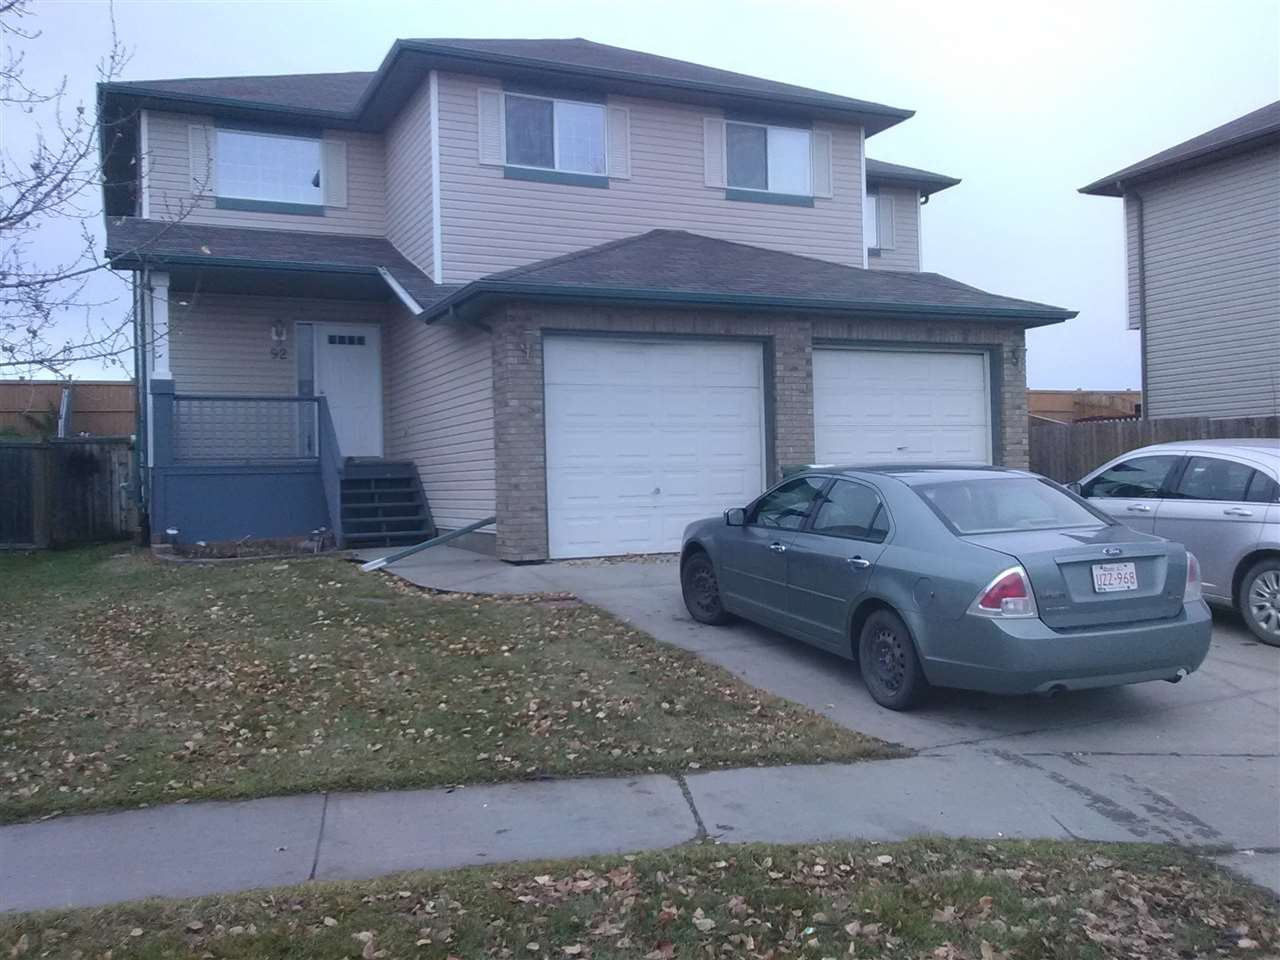 Main Photo: 92 DOUGLAS Lane: Leduc House Half Duplex for sale : MLS®# E4177767